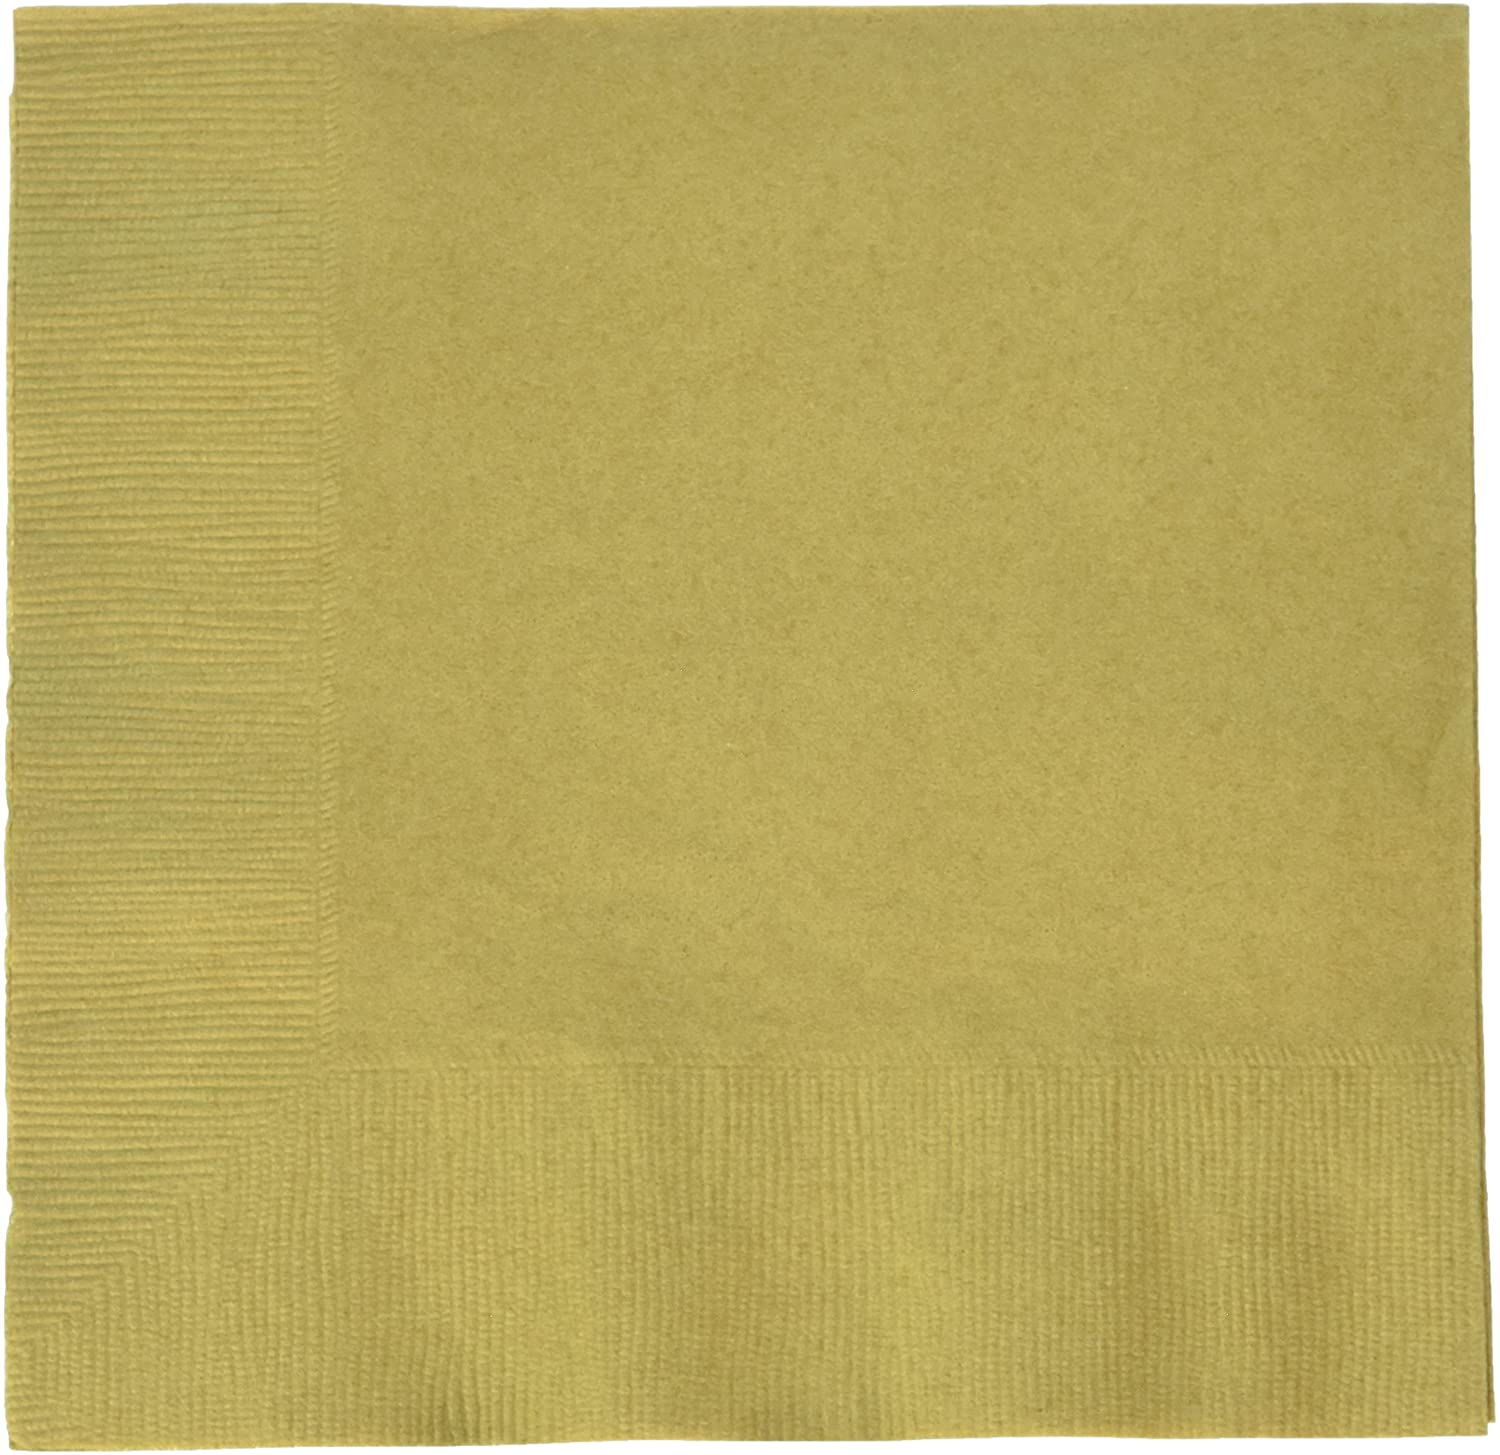 Gold 2-Ply Luncheon Napkins | Pack of 50 | Party Supply